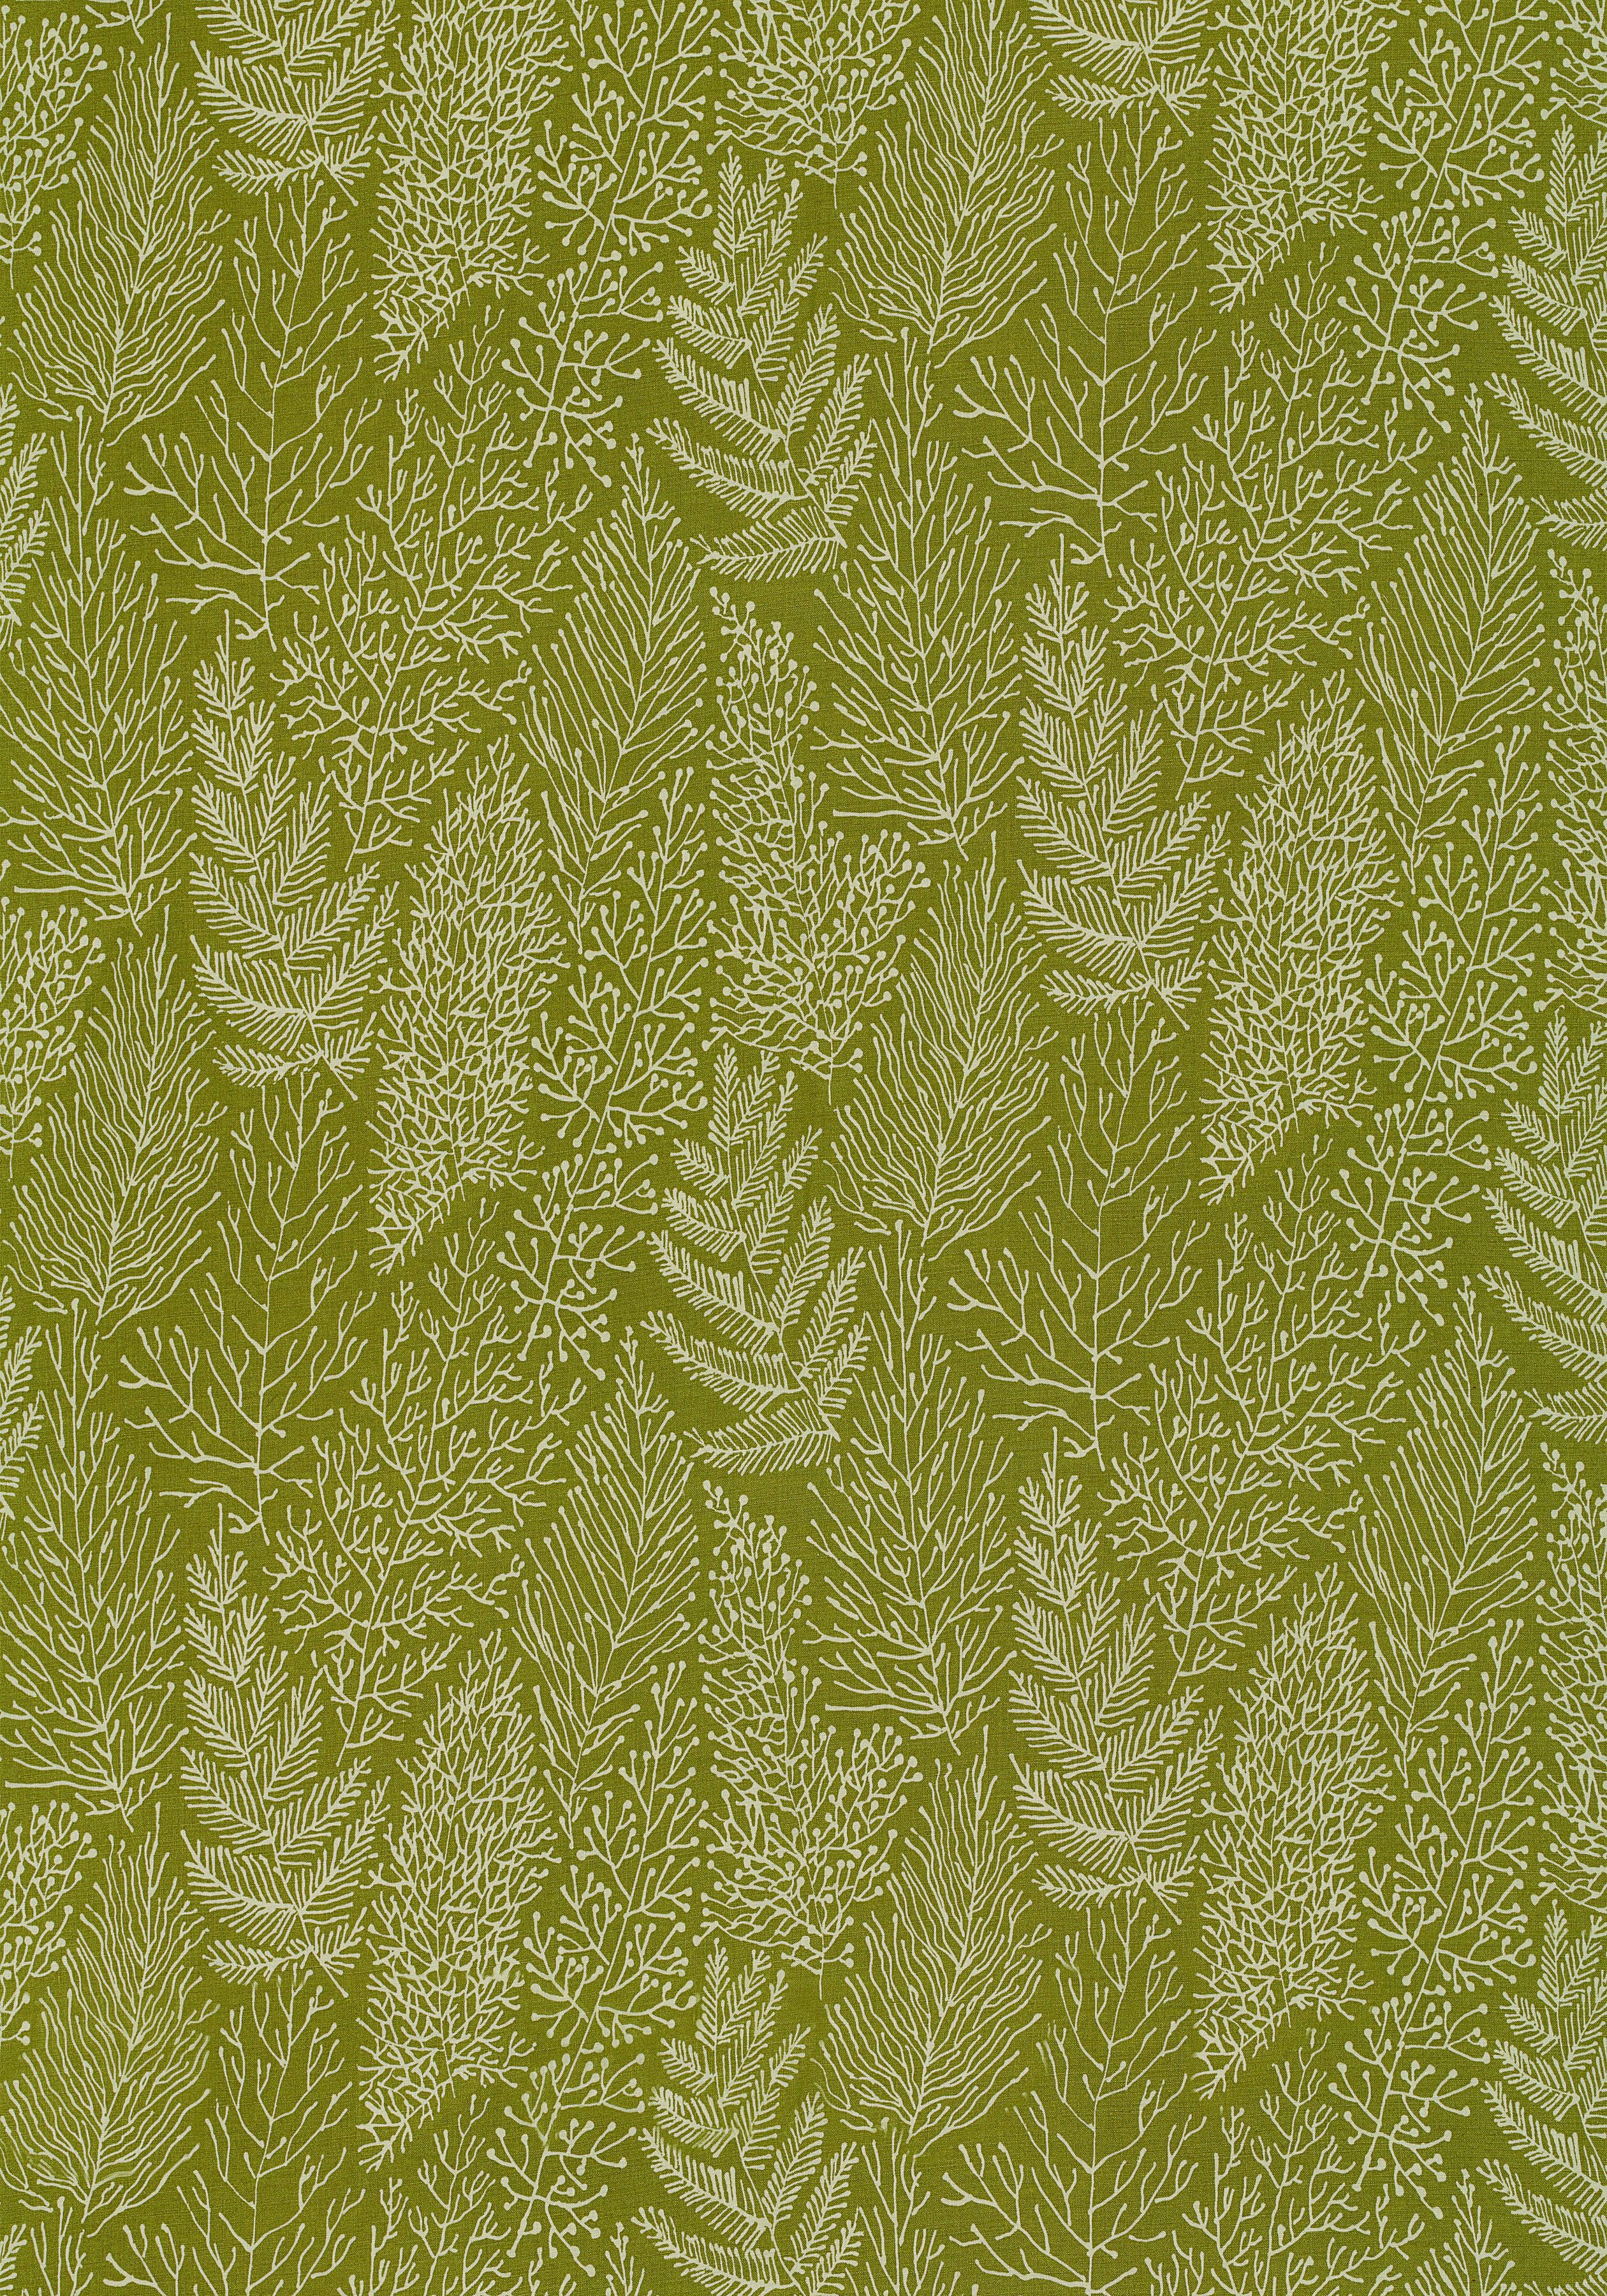 Thibaut - Anna French - AF1366 Pattern STACKHOUSE Printed ...